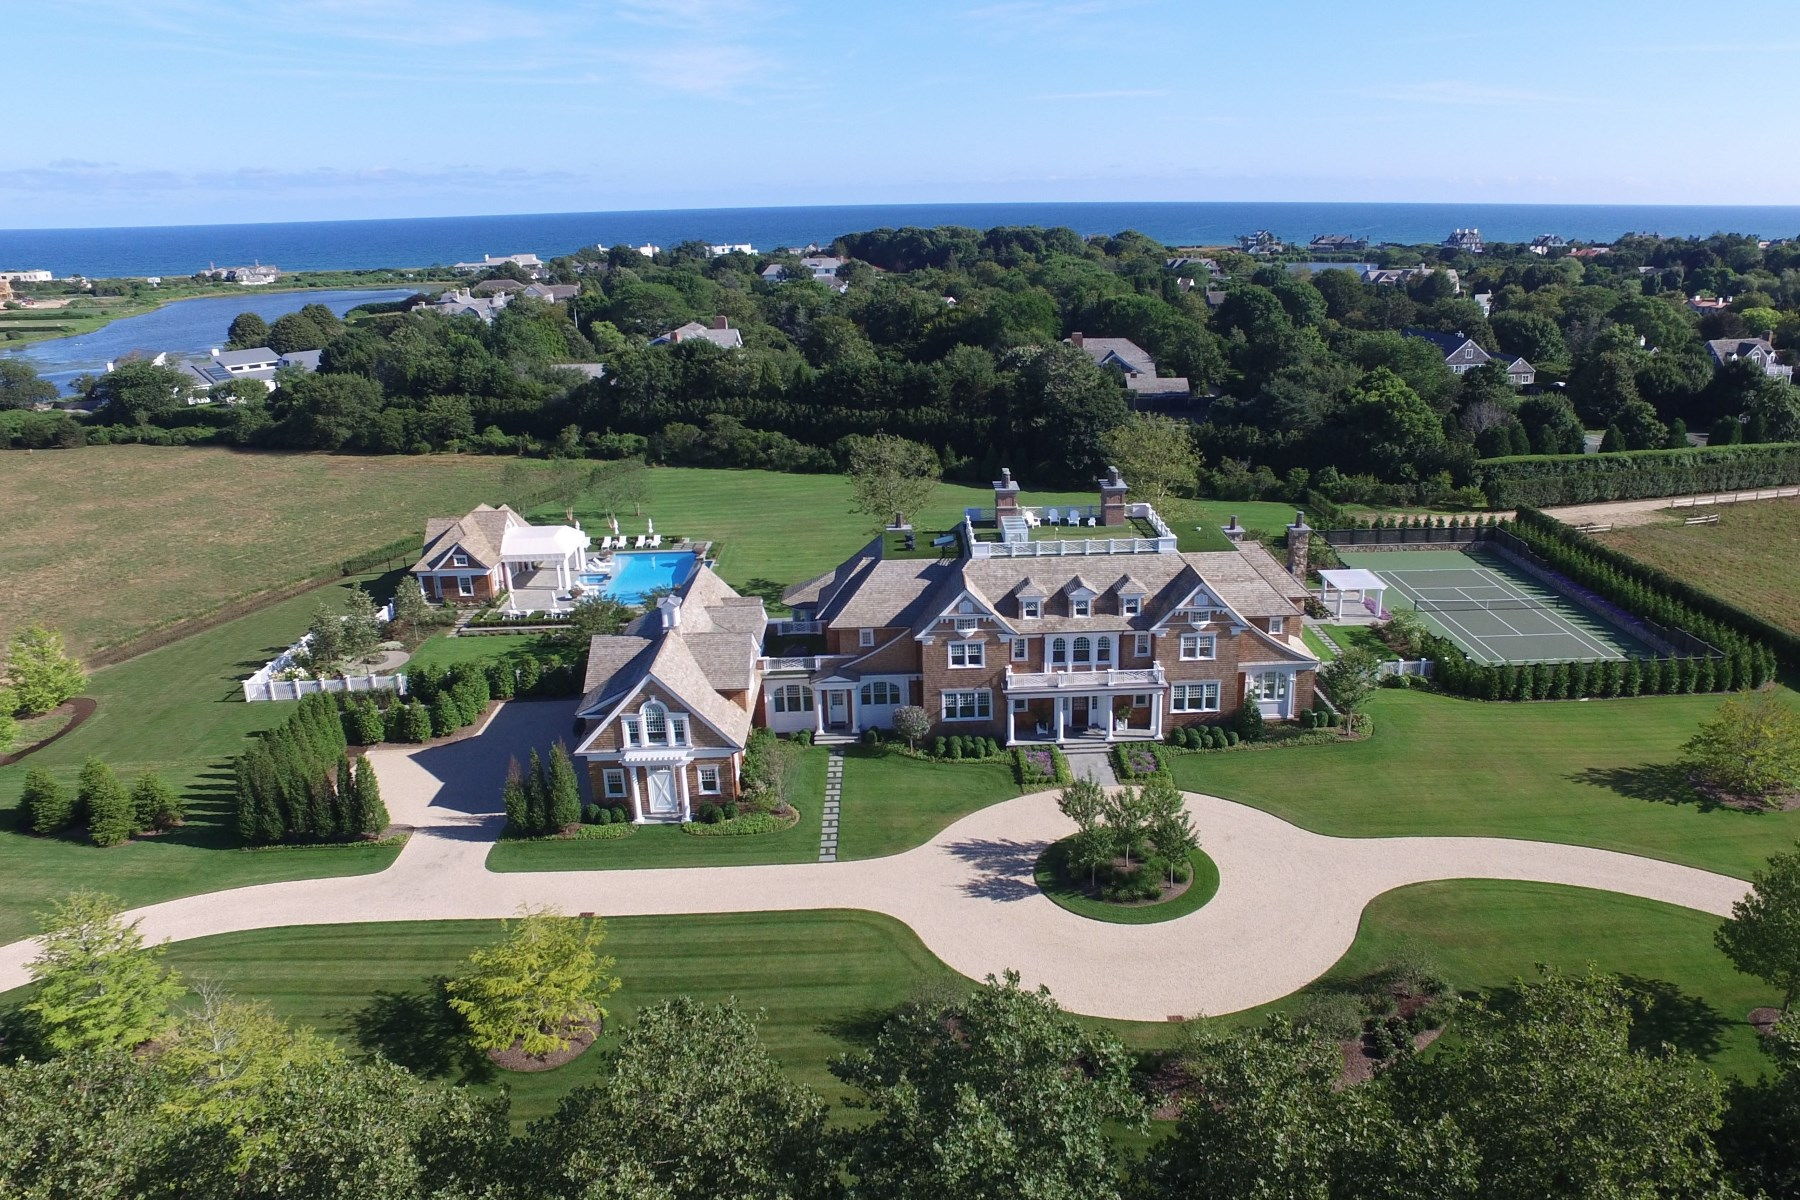 Single Family Homes for Sale at Twin Peaks Luxury Estate 9 Olde Towne Lane Southampton, New York 11968 United States